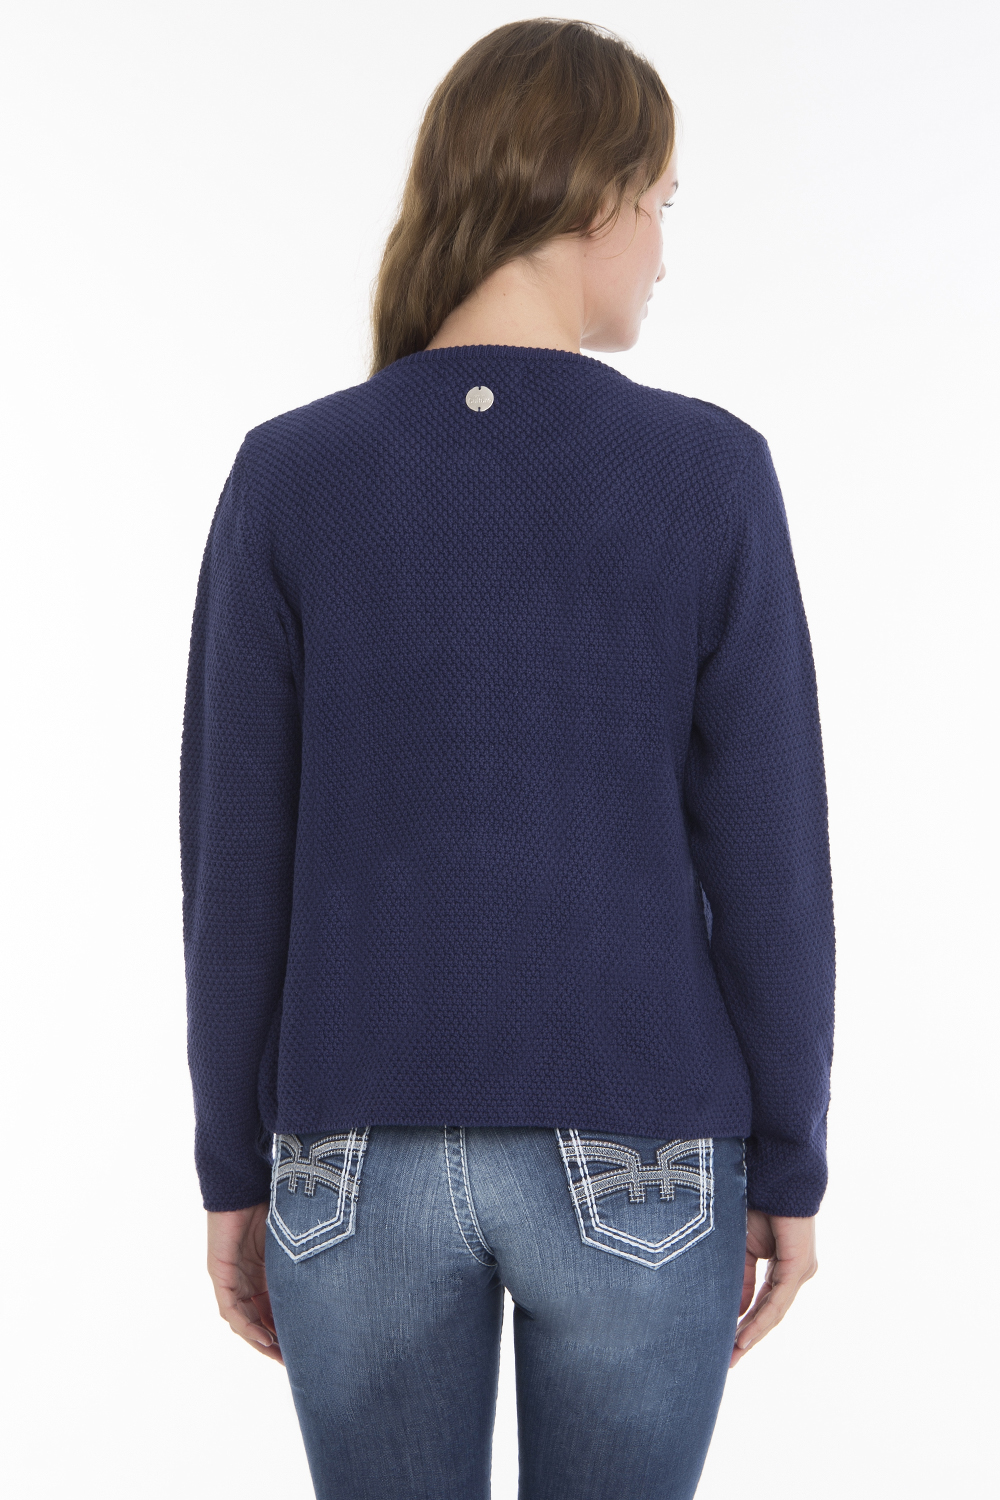 Women's Cardigan Hook Crew Neck Navy